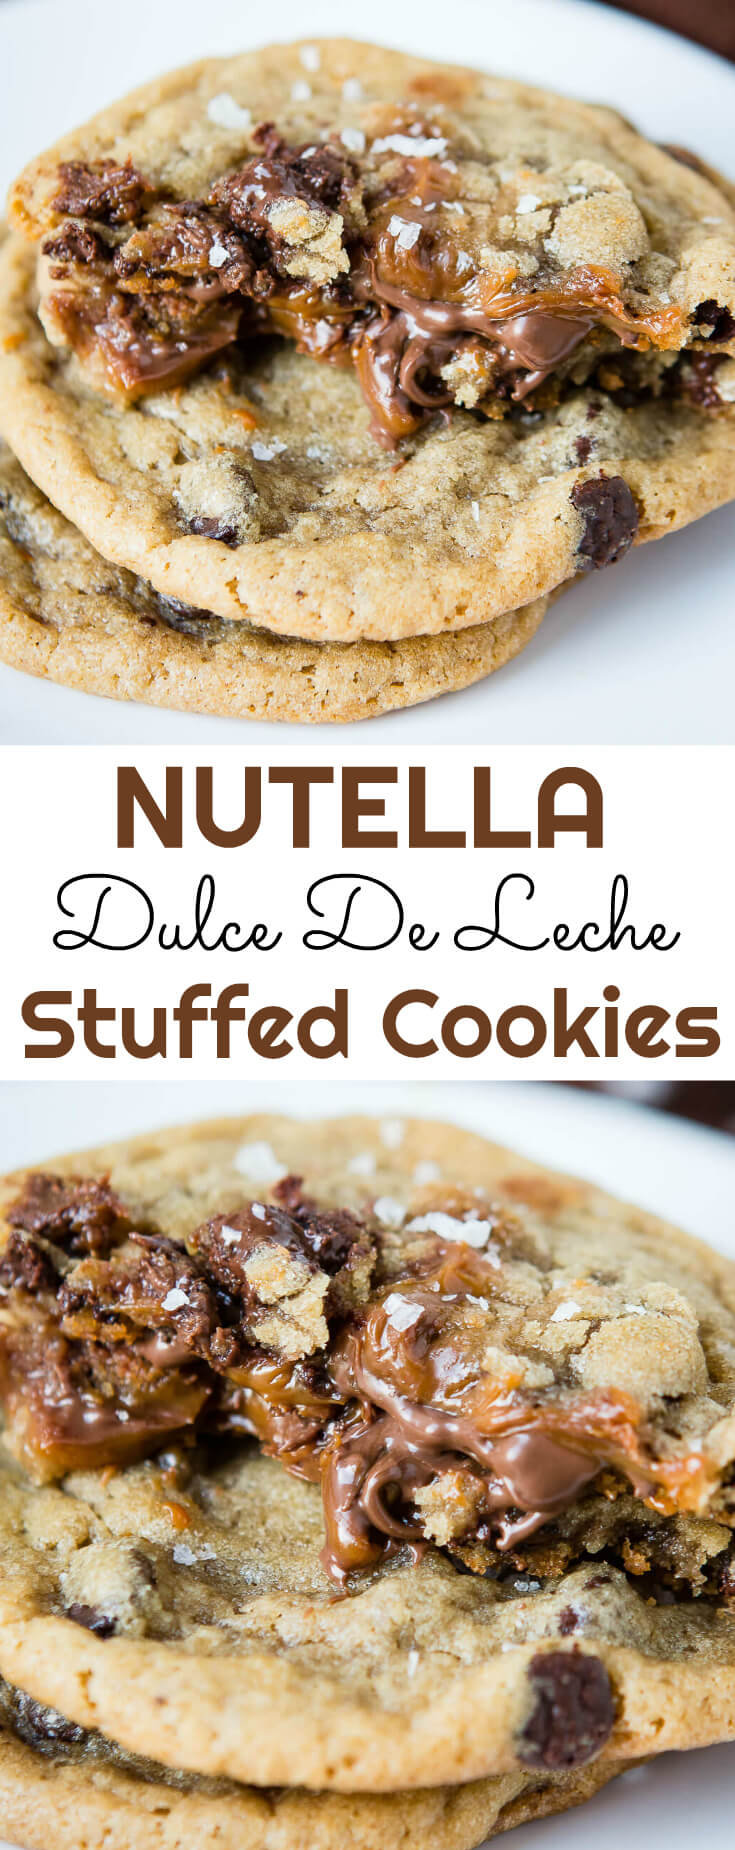 rown butter, check. Sea salt, check. Chocolate Chip Cookie, check. Nutella and dulce de leche stuffed cookies, heaven. You absolutely must try these!